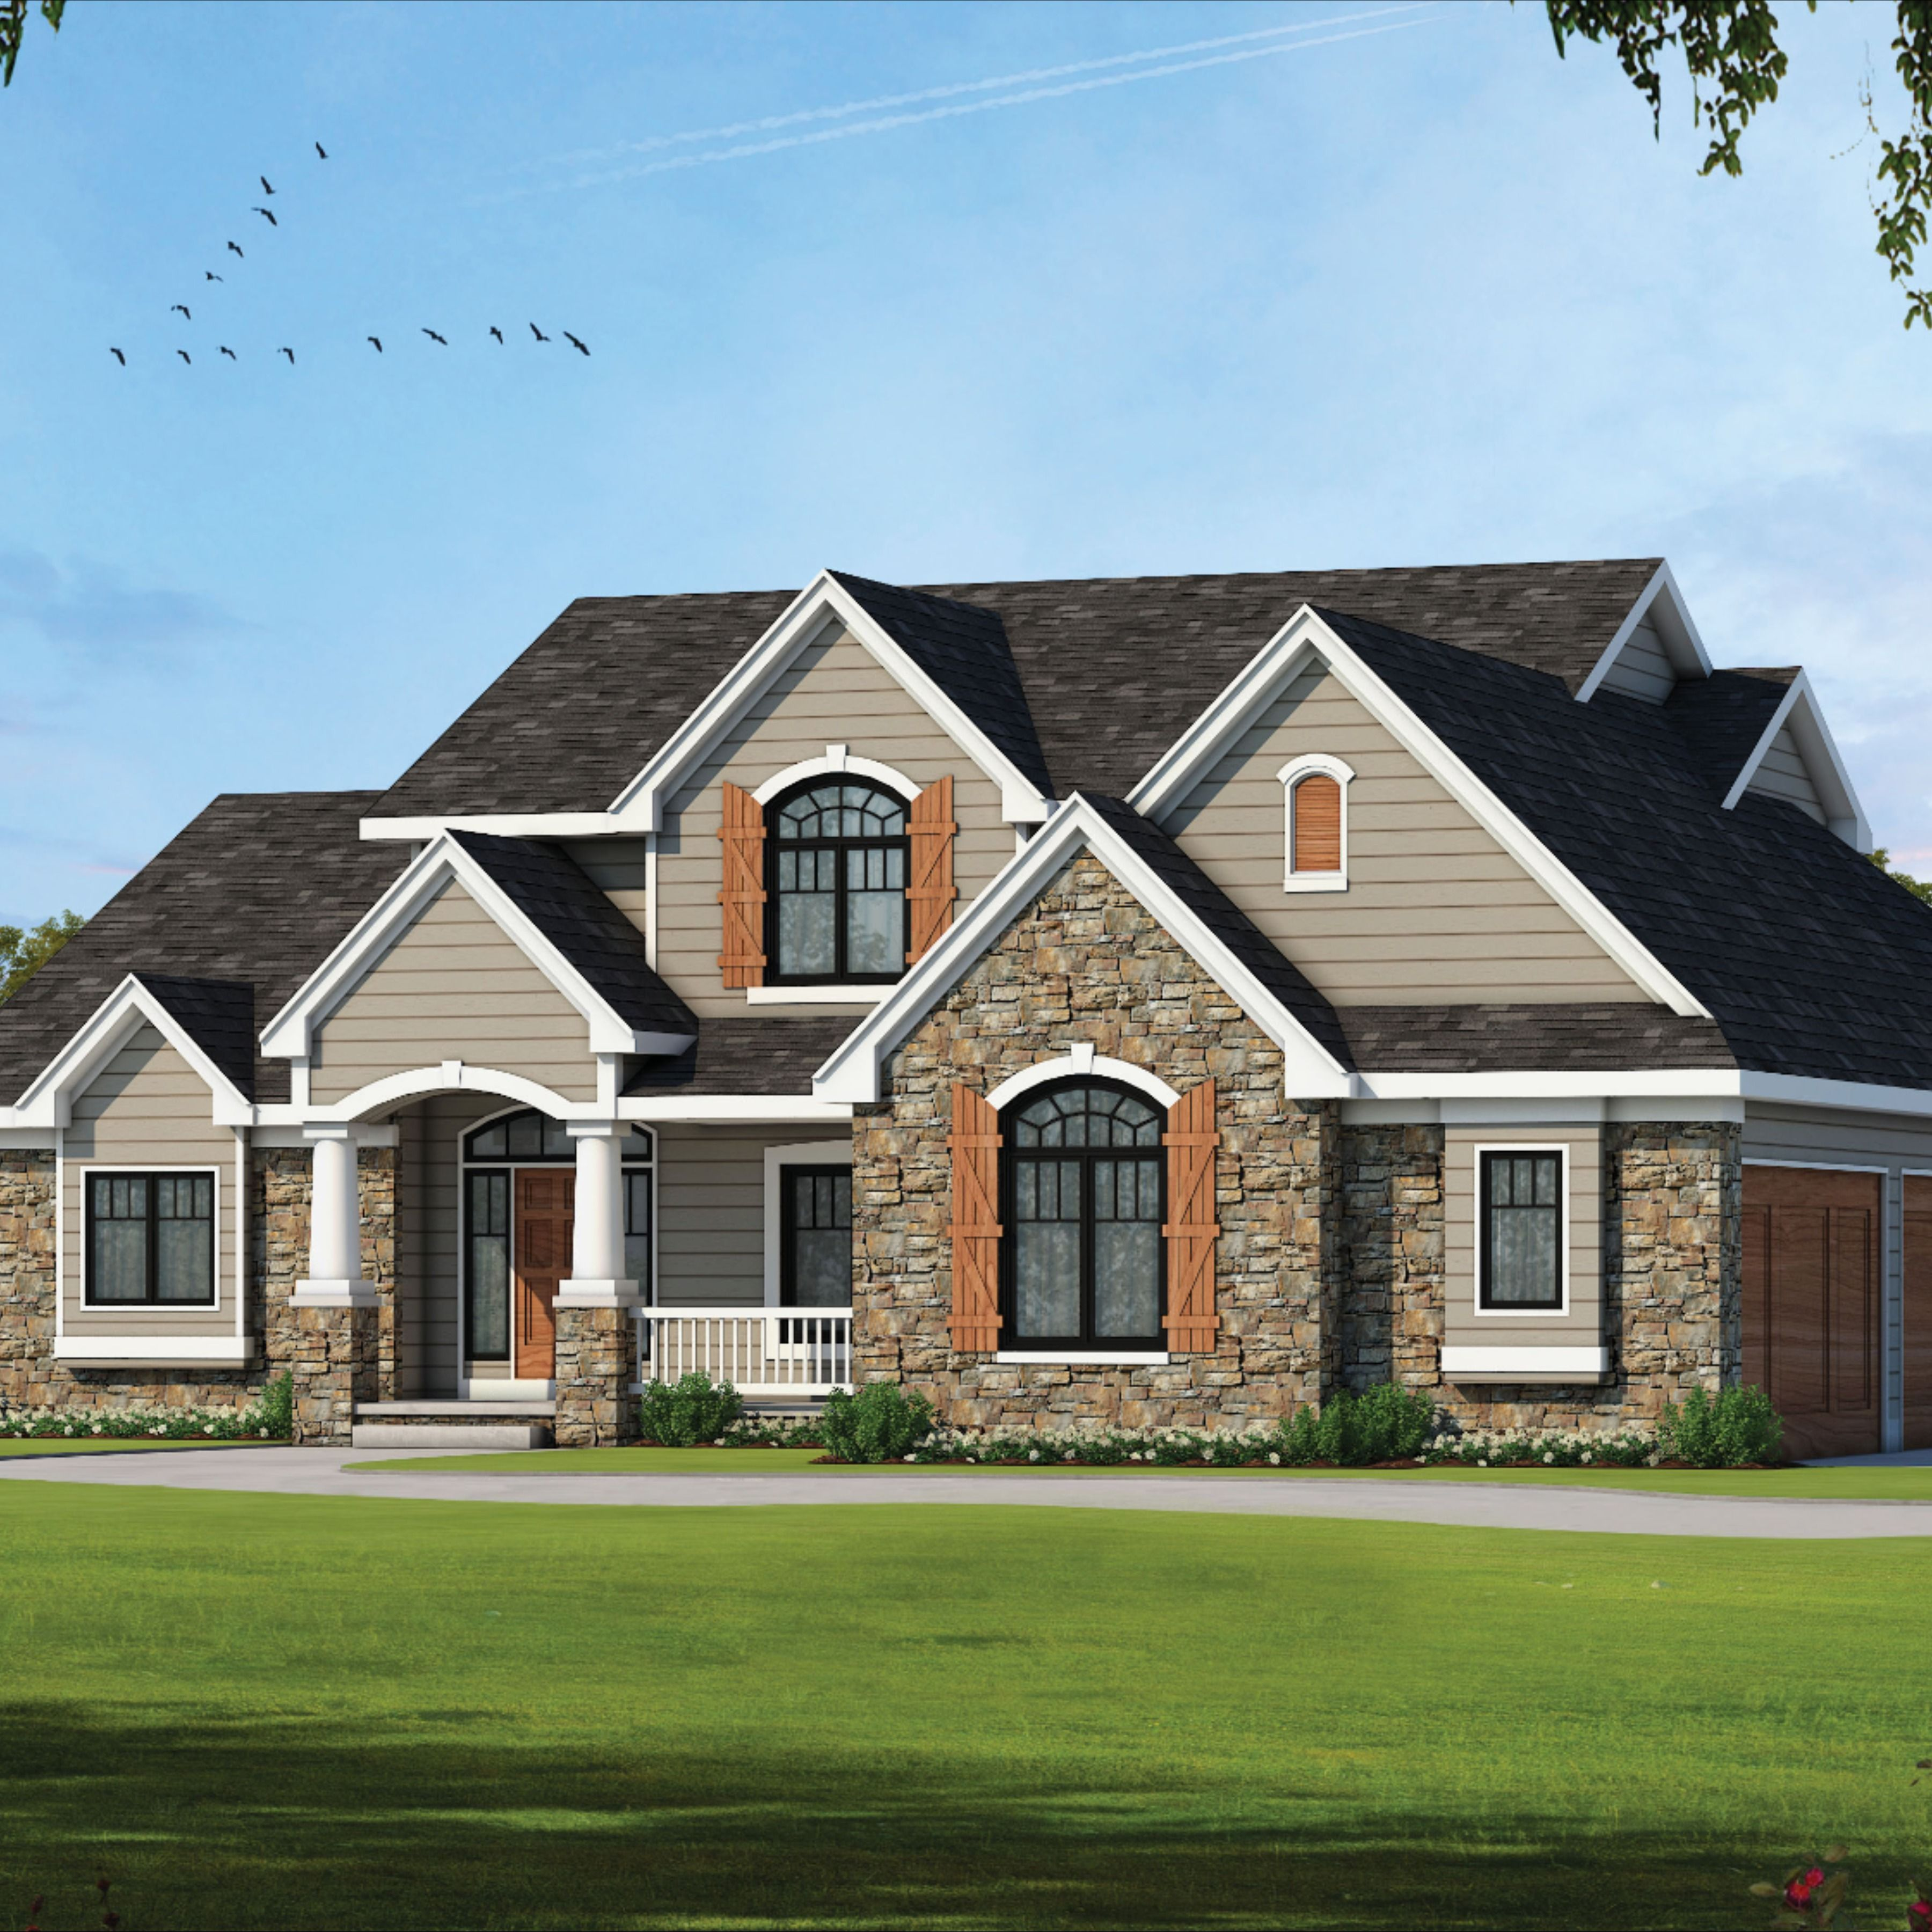 Plan View Design Basics Two Story House Plans French Country House Plans Story House